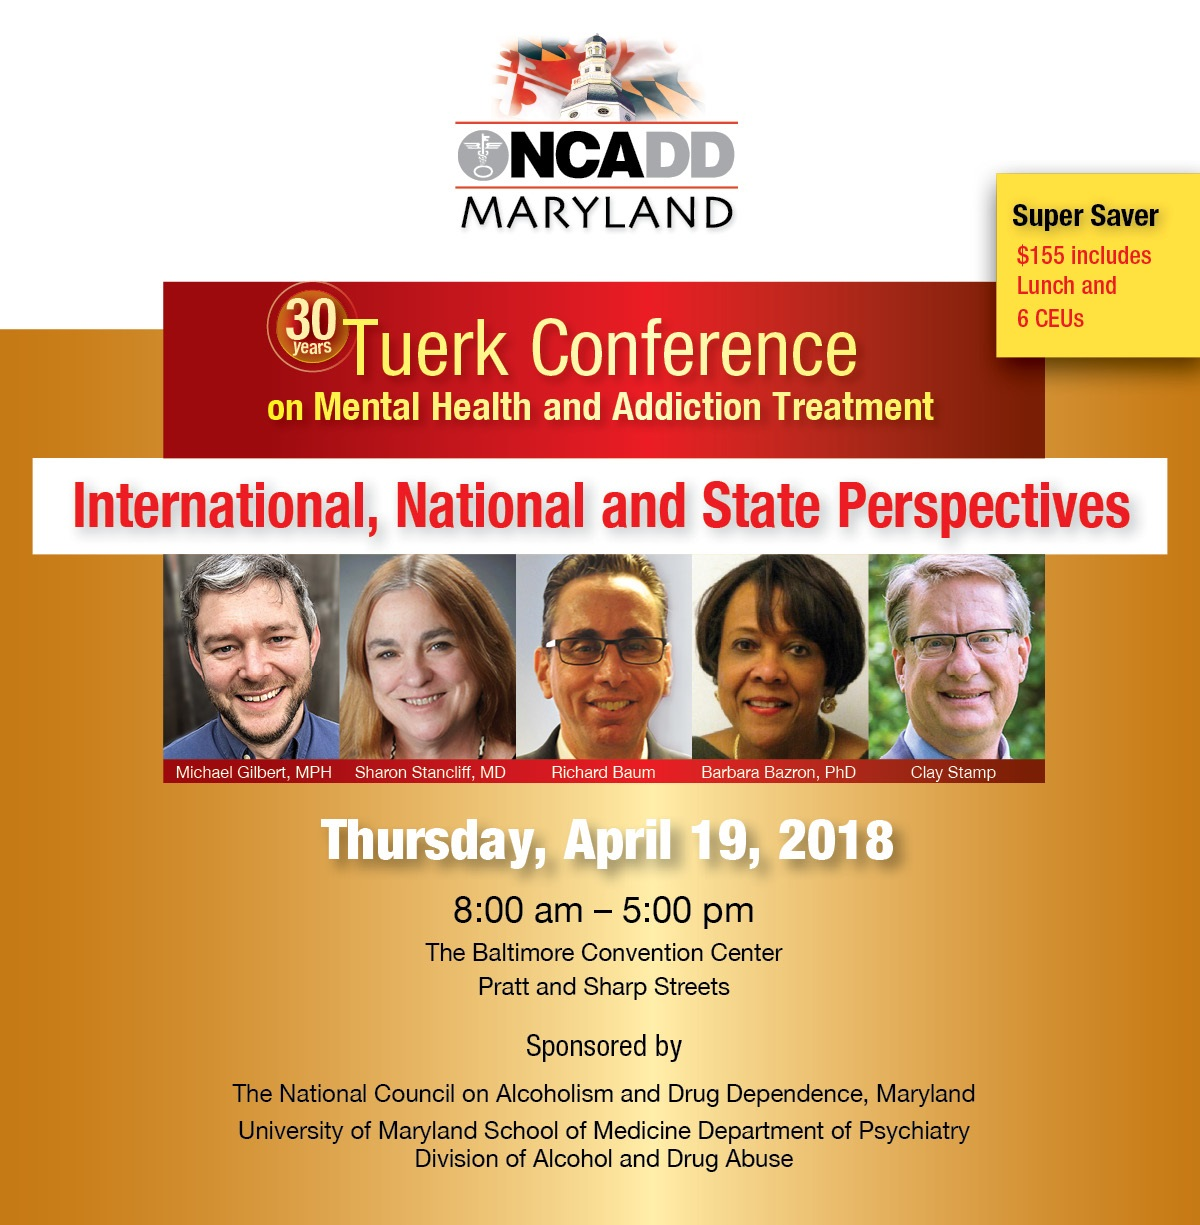 2018 Tuerk Conference On Mental Health And Addiction Treatment